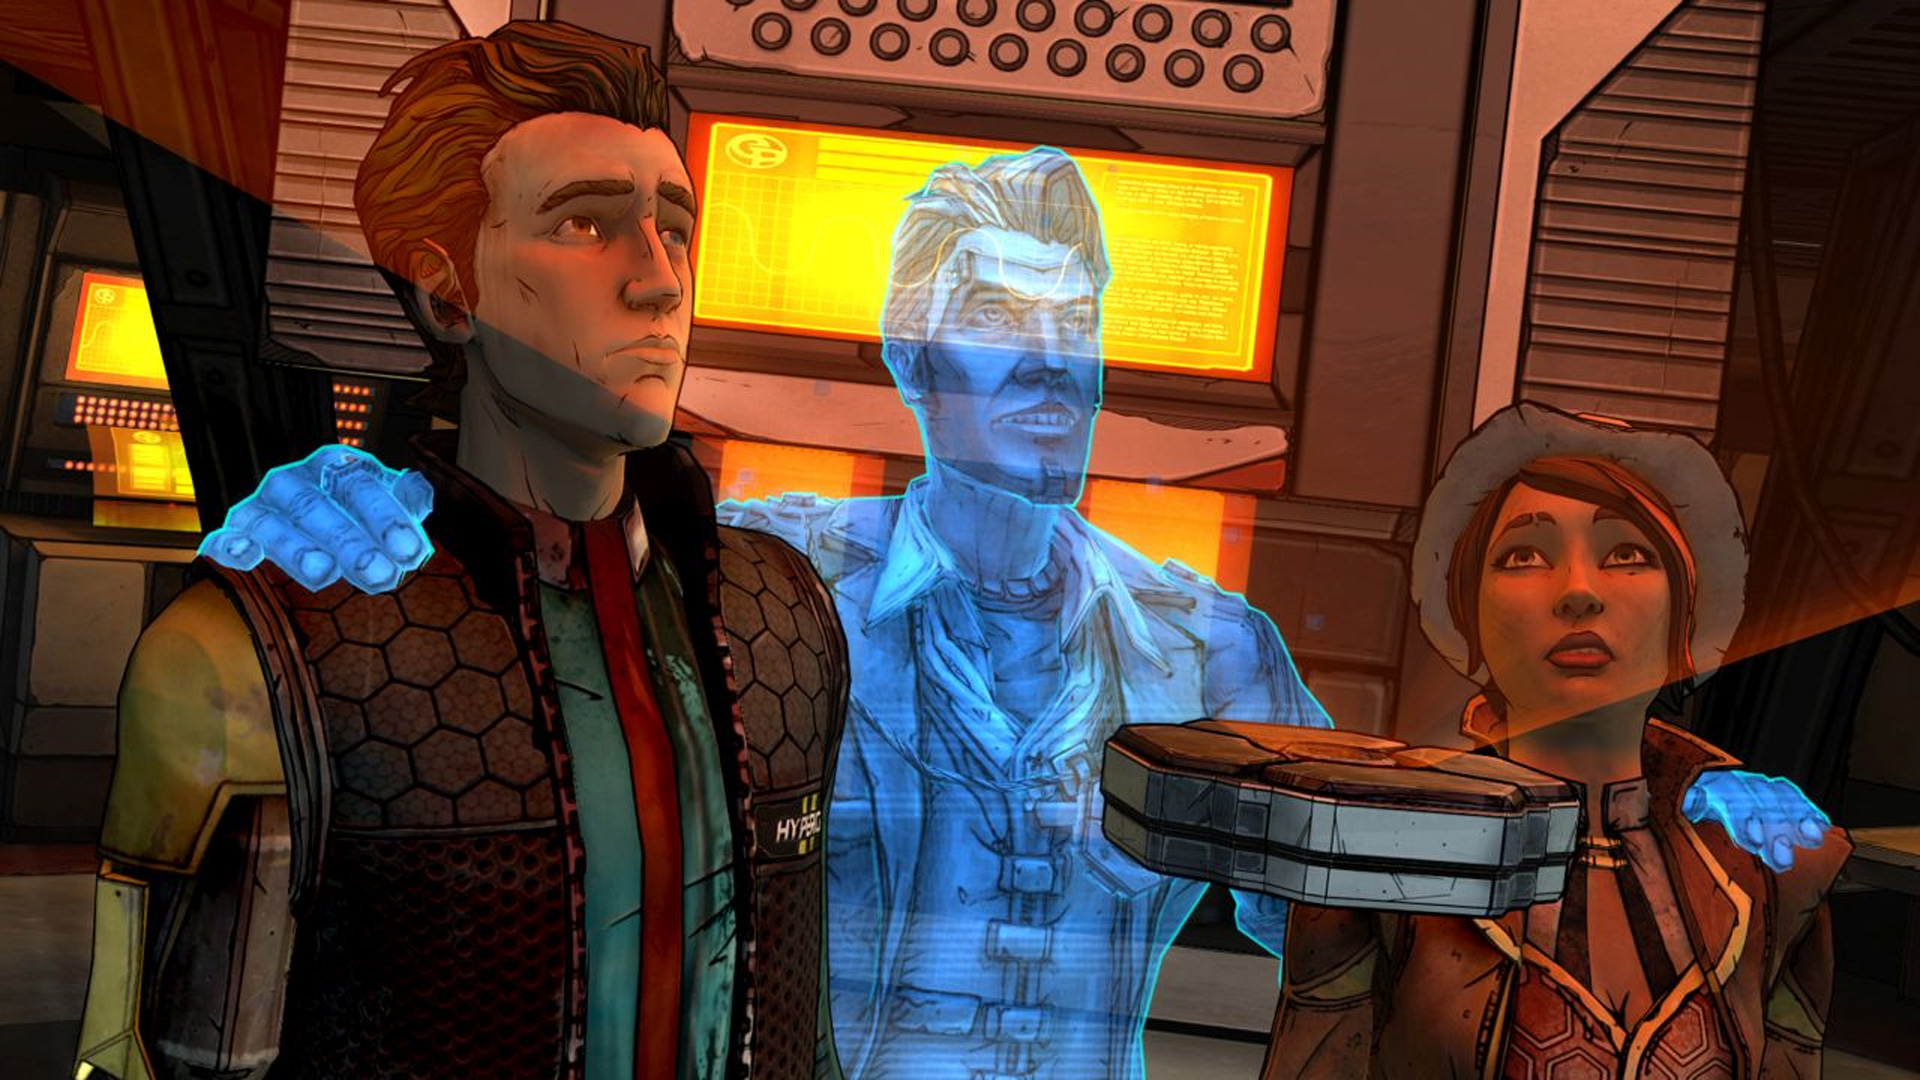 Tales from the Borderlands Episode 2: Atlas Mugged Screenshot